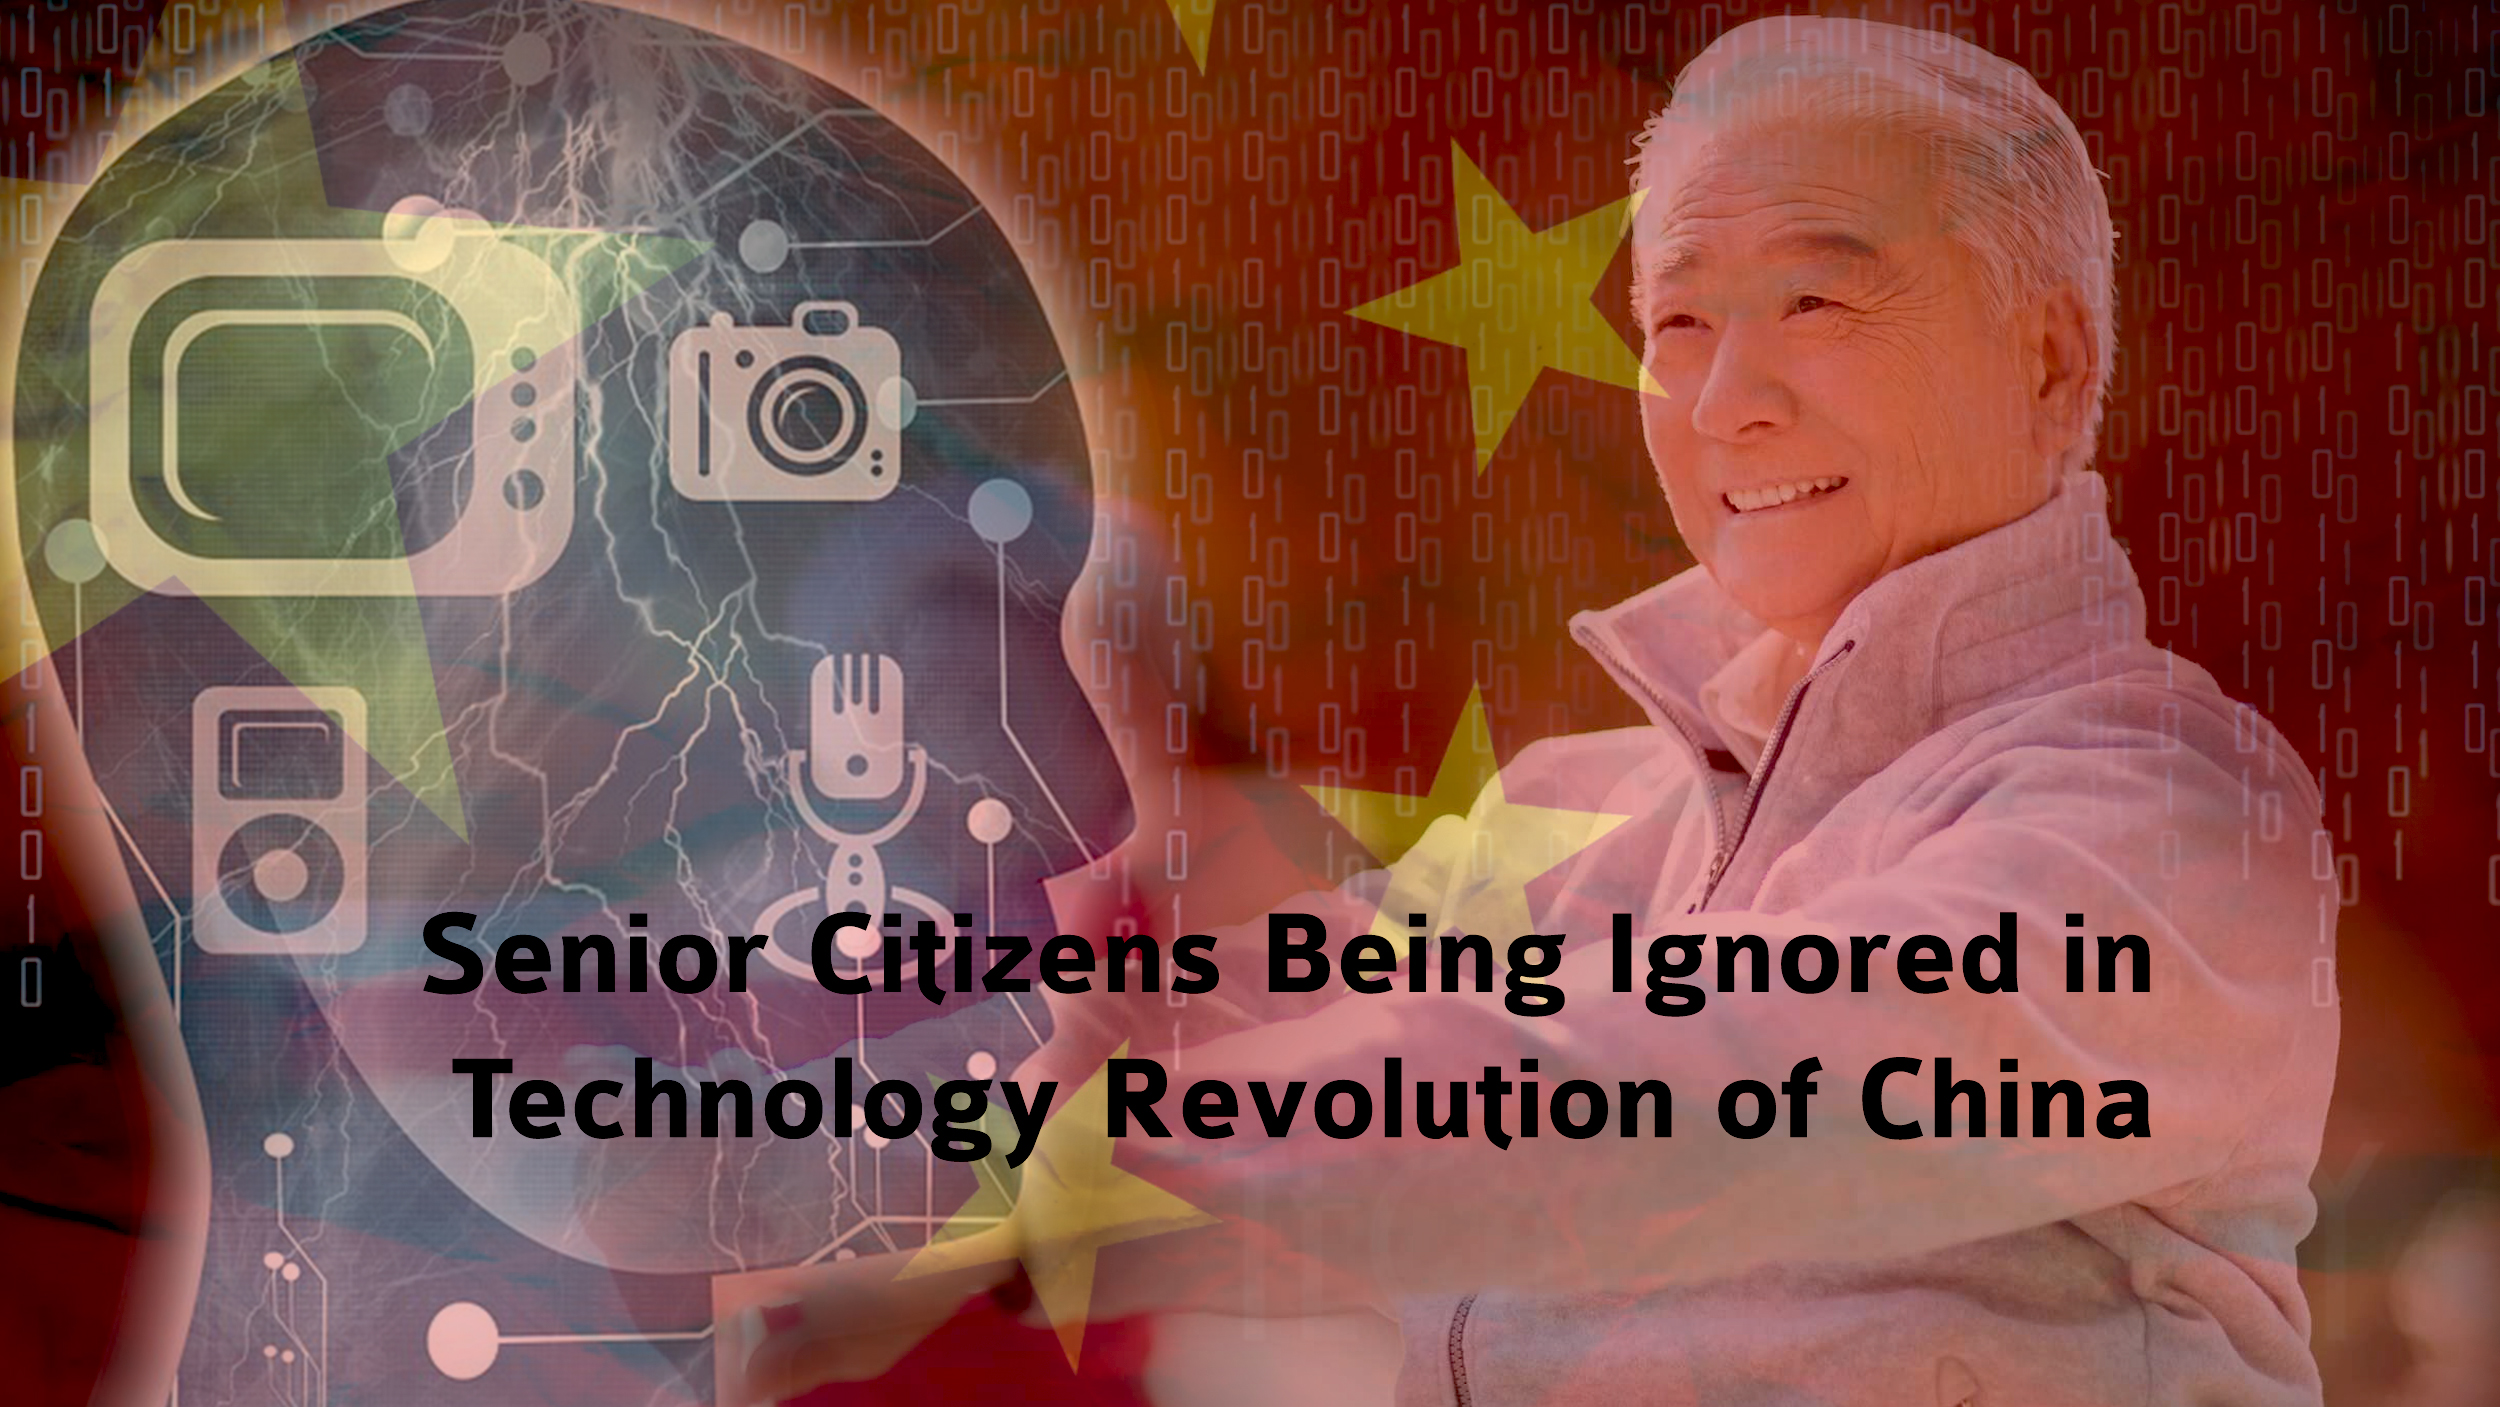 Senior Citizens Being Ignored in Technology Revolution of China